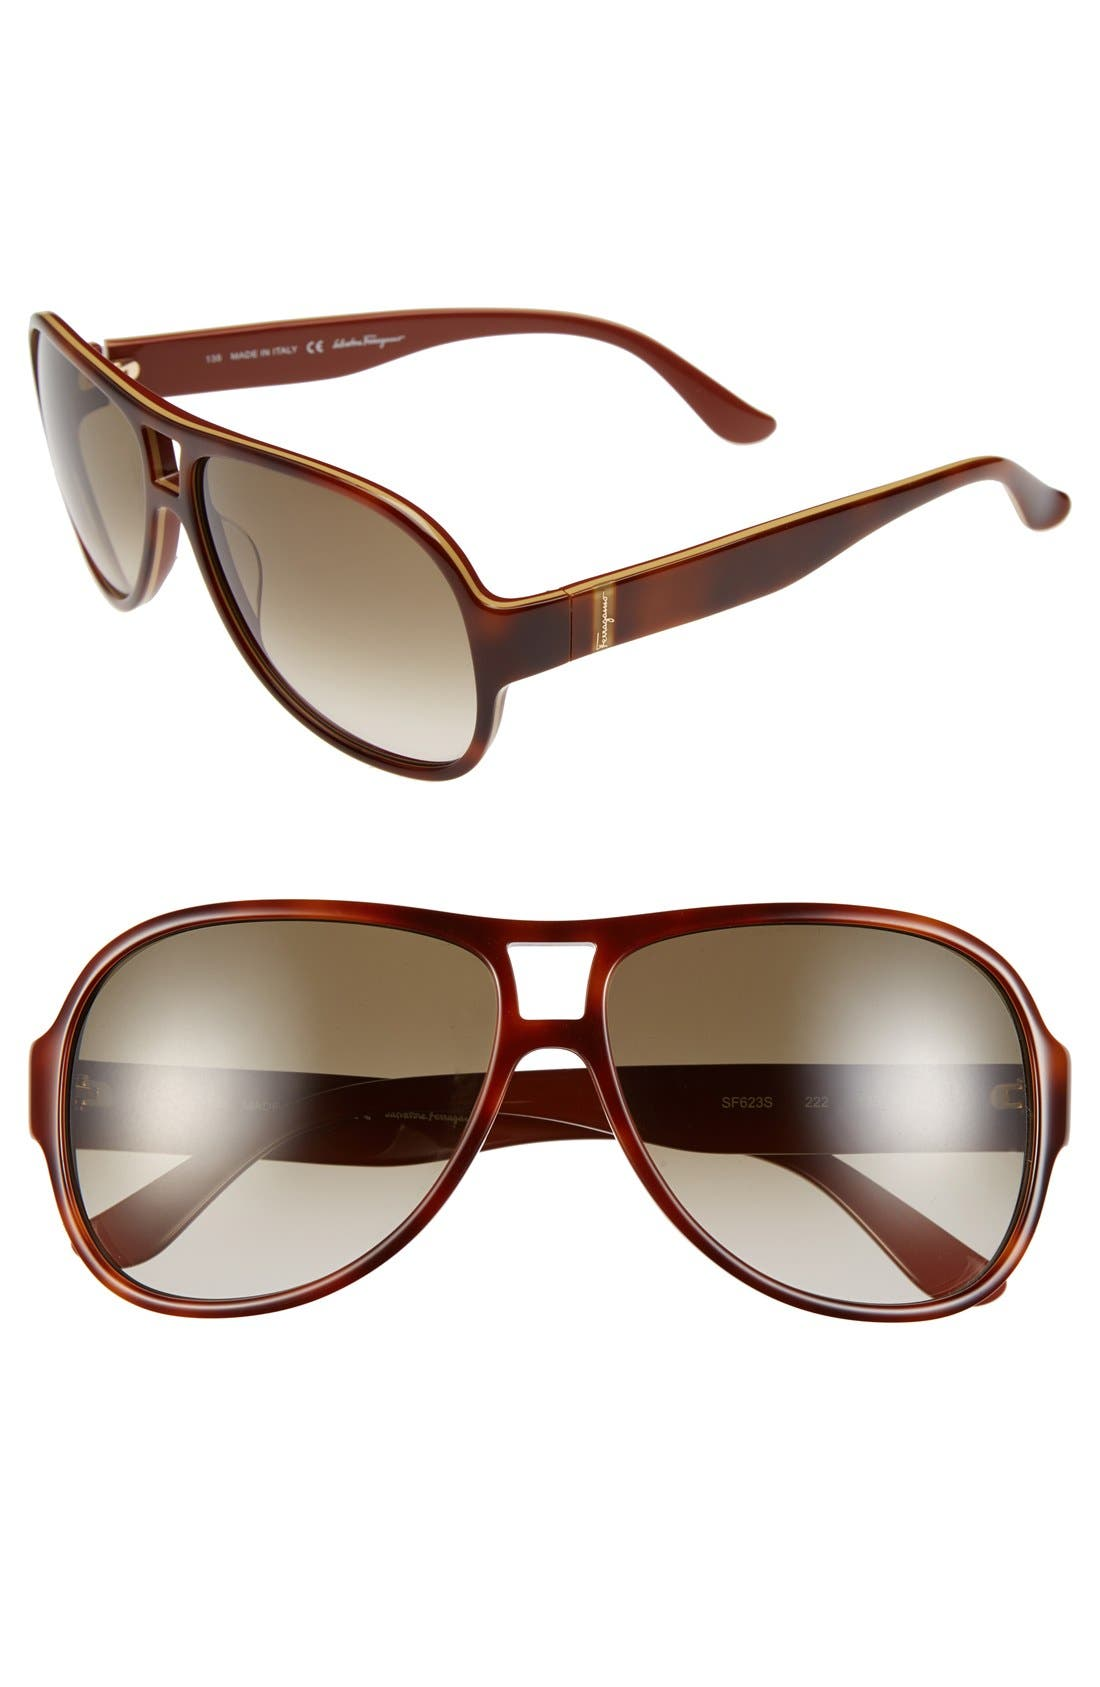 Main Image - Salvatore Ferragamo 59mm Aviator Sunglasses